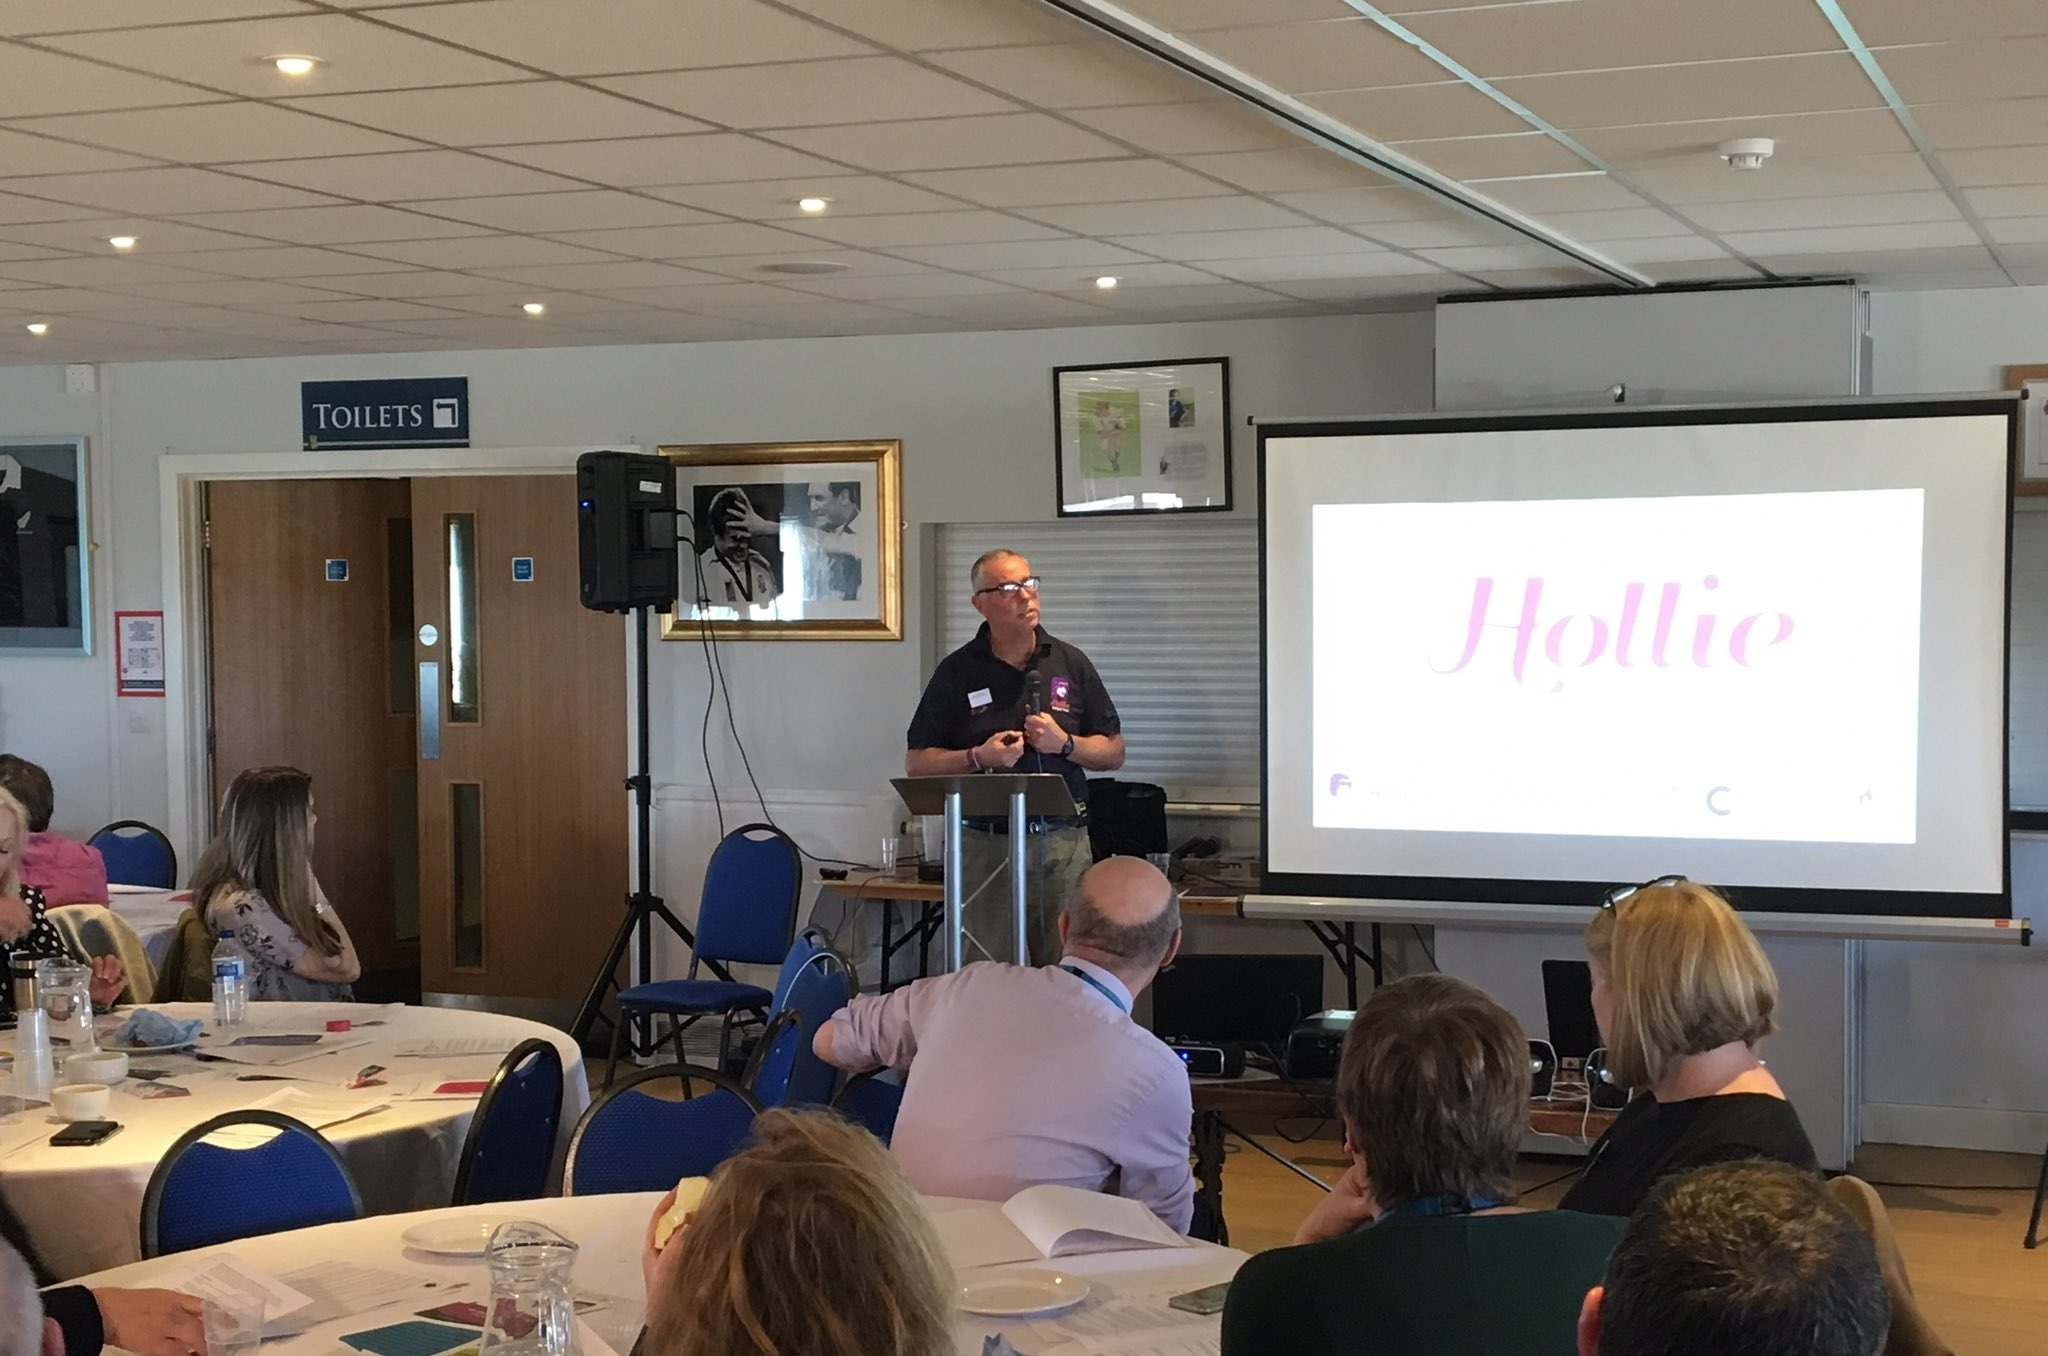 Nick Gazzard shares Hollie's story & his work to raise awareness of stalking & domestic abuse.